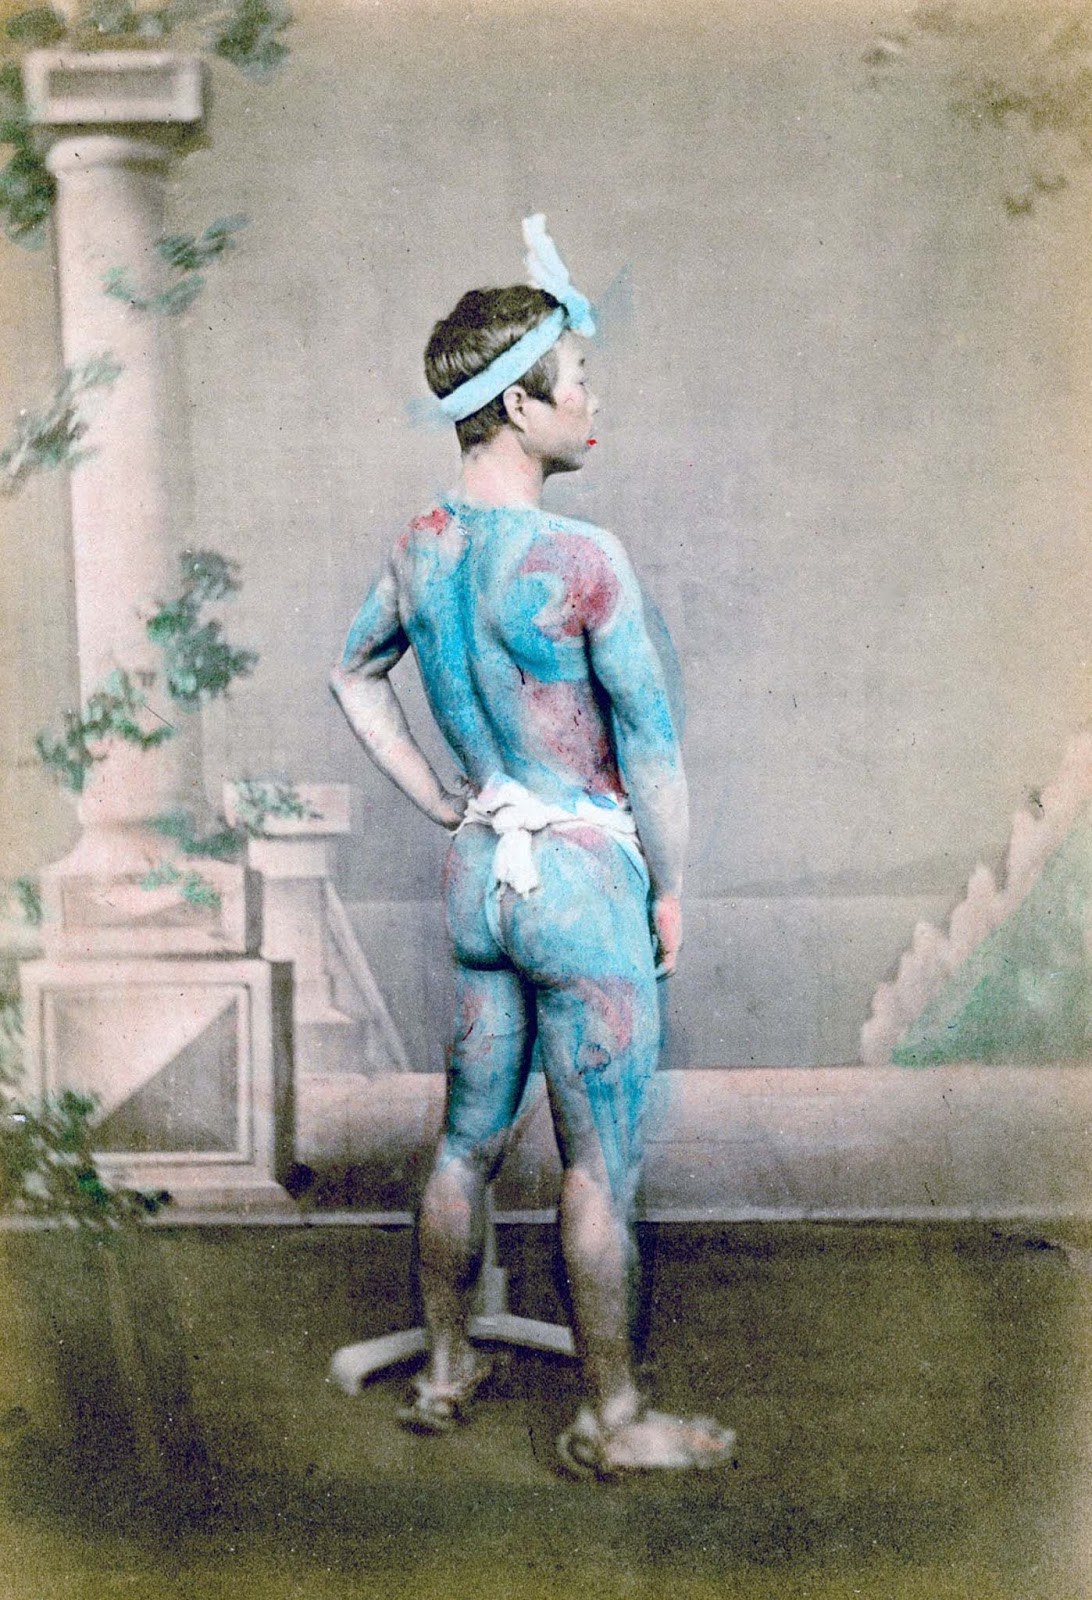 1882. An early example of Irezumi tattoos.